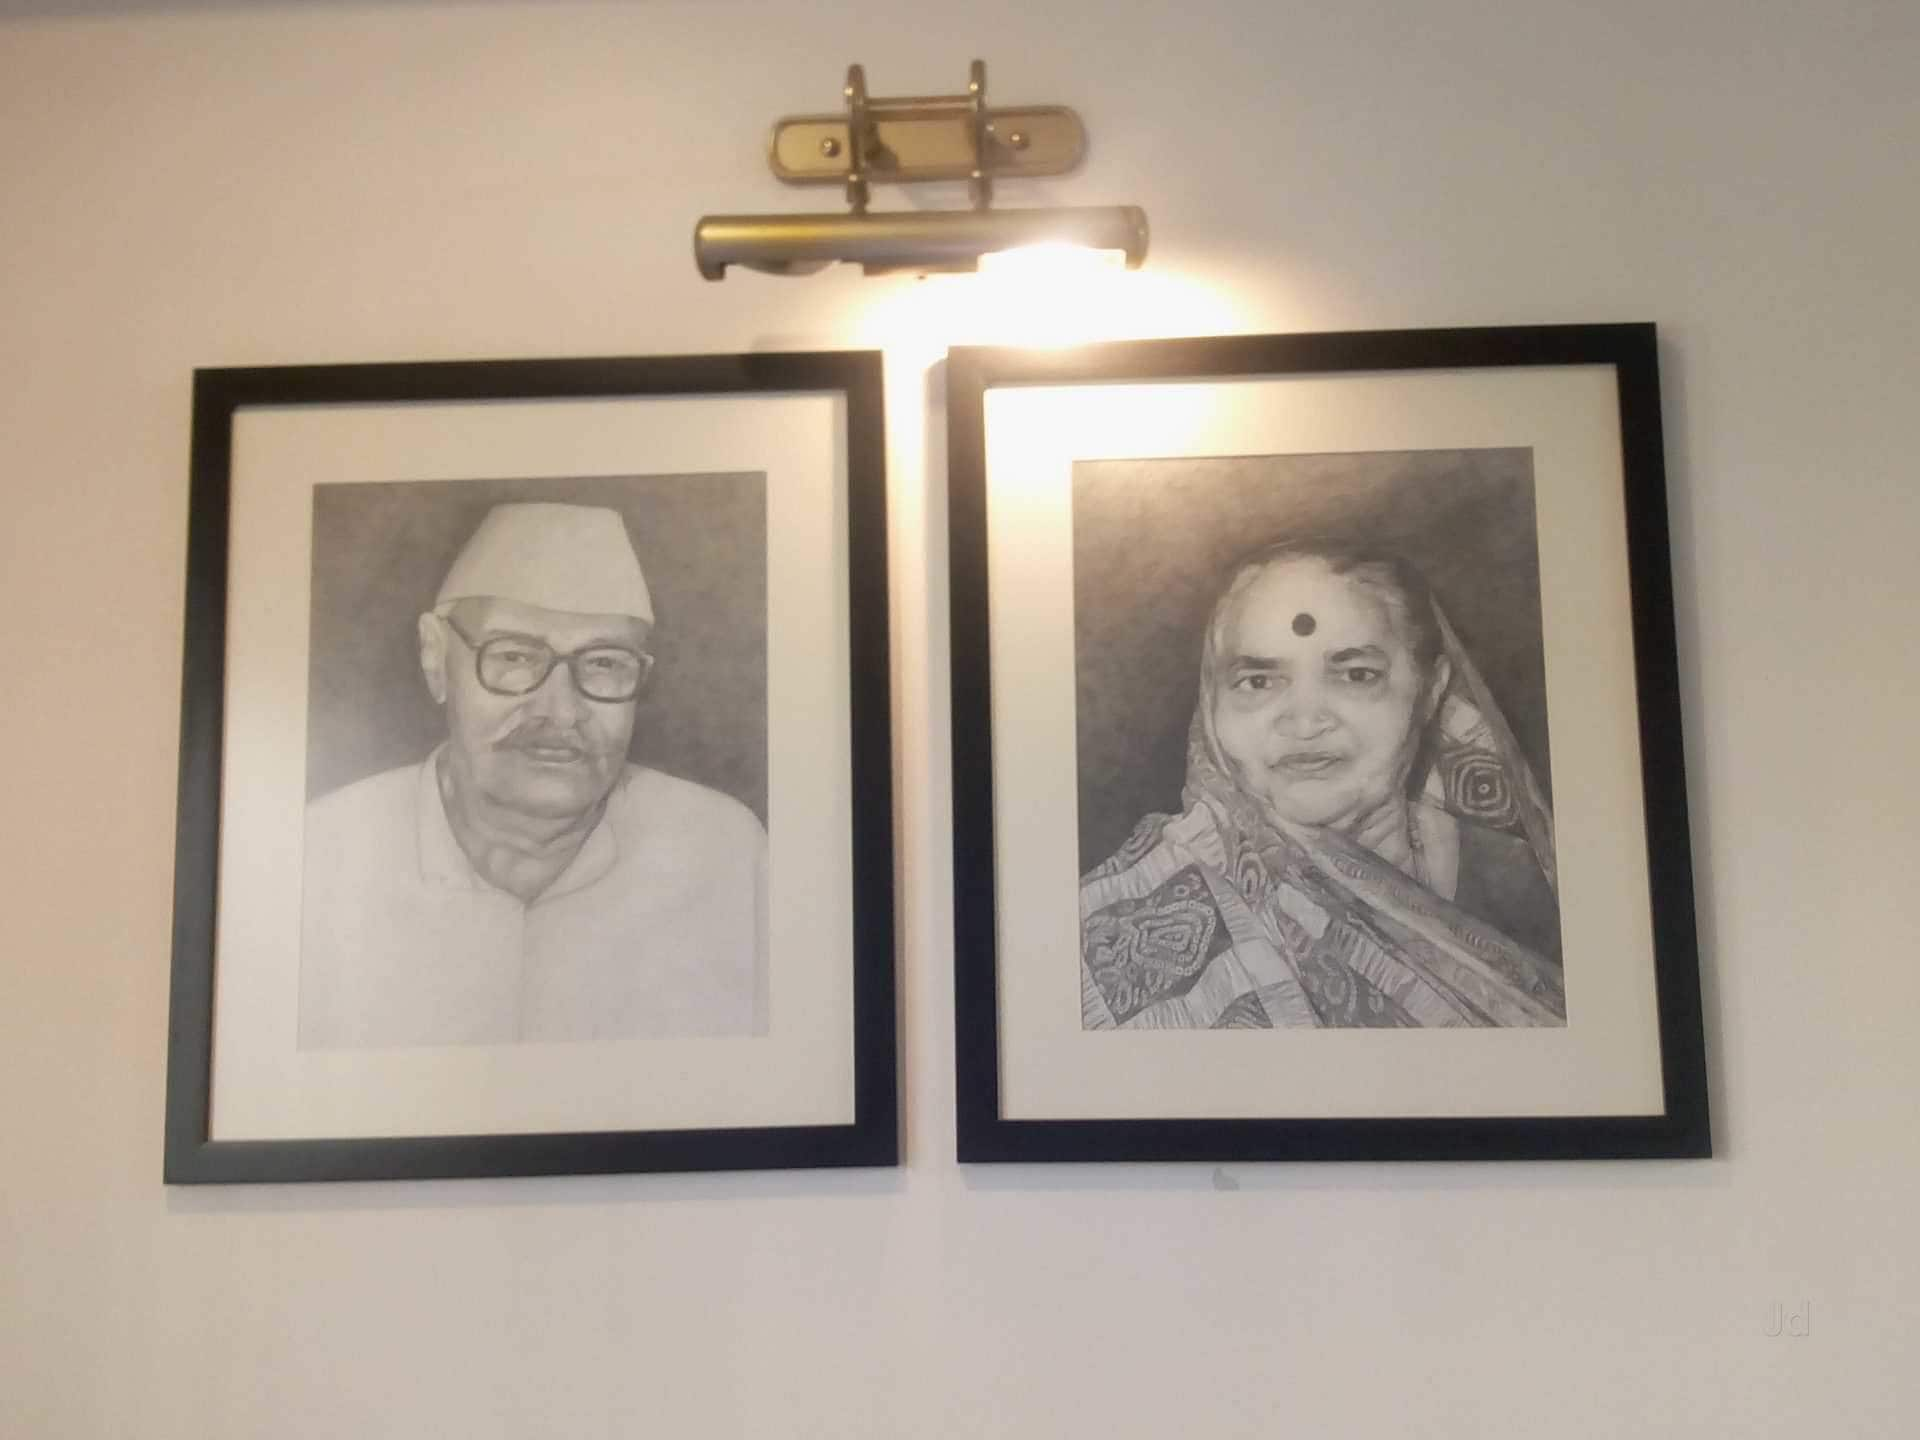 Top 20 photorealistic drawing classes in goregaon west best realistic pencil drawing classes mumbai justdial